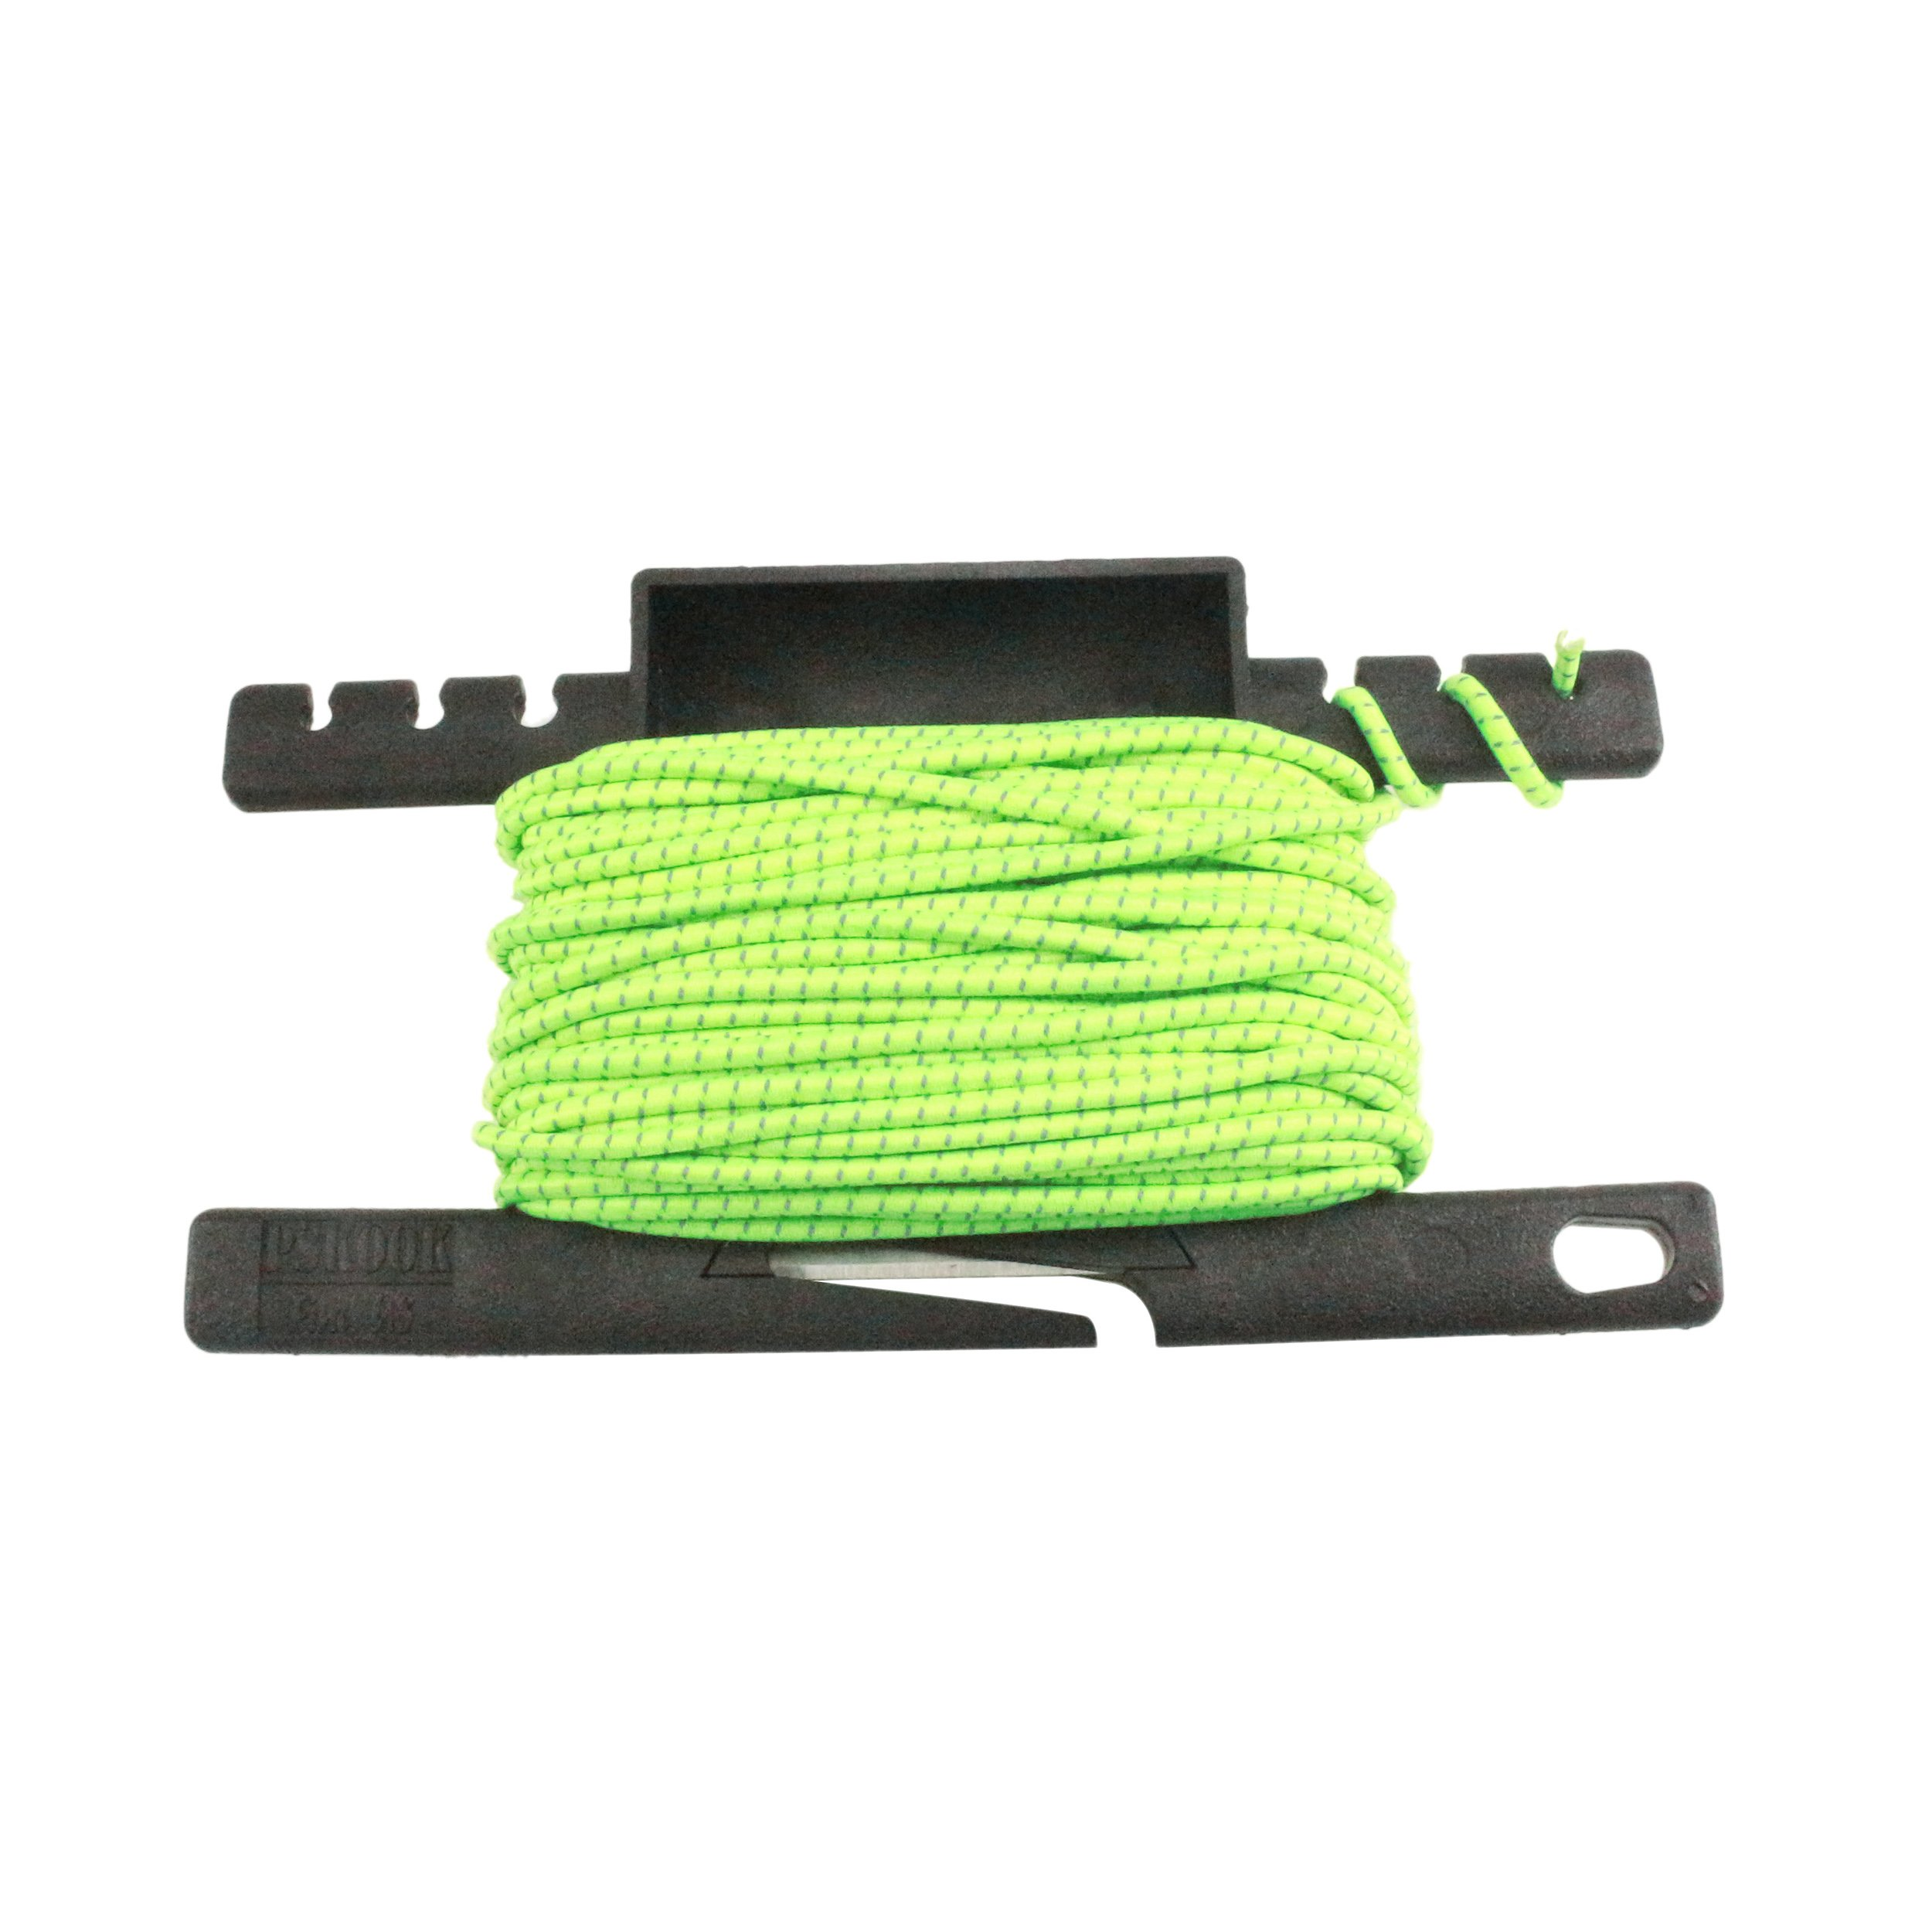 PSKOOK Reflective Shock Cord 1/8 inch Bungee Cord Elastic Rope Line for Outdoor Survival Camping Hiking 3mm 50FT with Spool Tool(50Feet Neon Green)